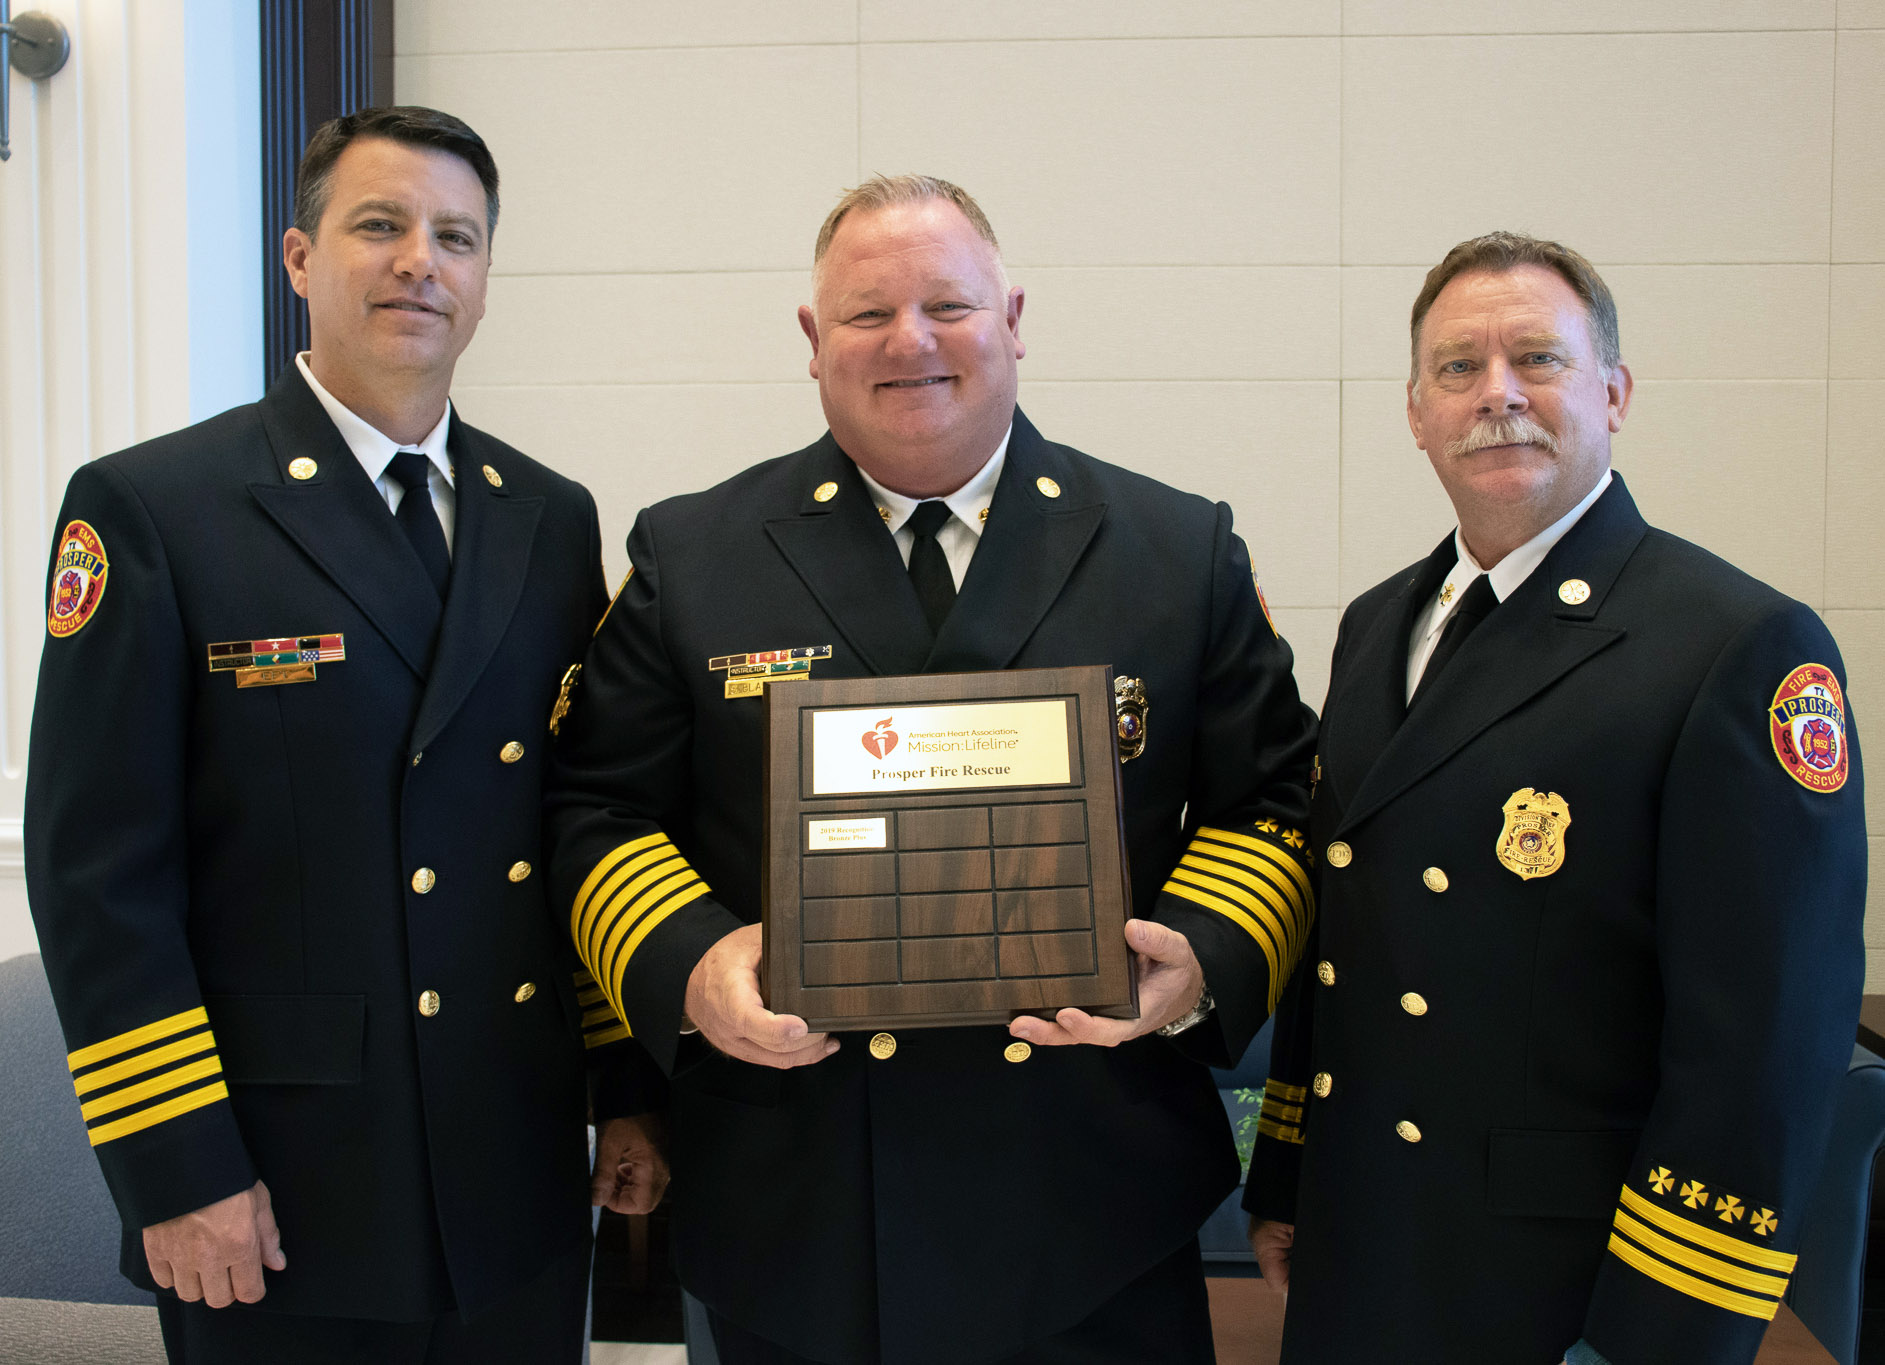 EMS wins national recognition for pre-hospital care